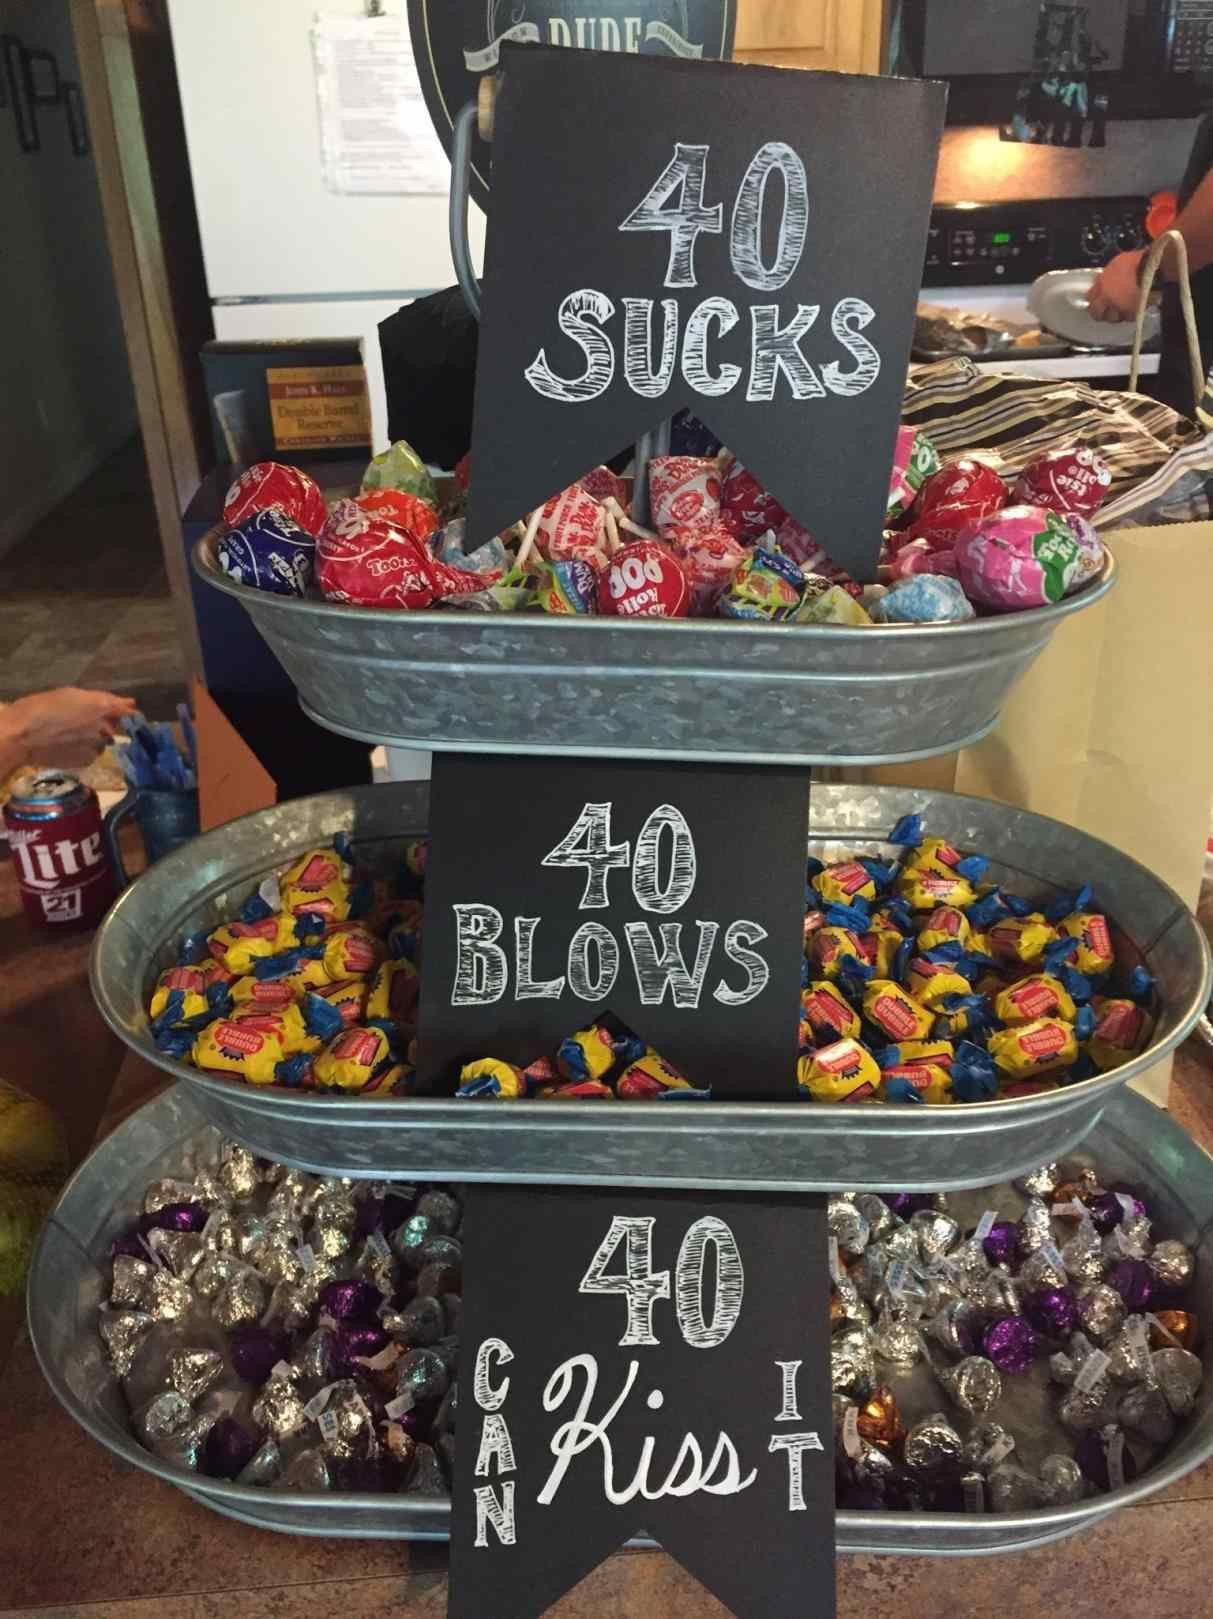 Best ideas about 40th Birthday Party Ideas . Save or Pin 60th birthday party ideas for husband siudy Now.